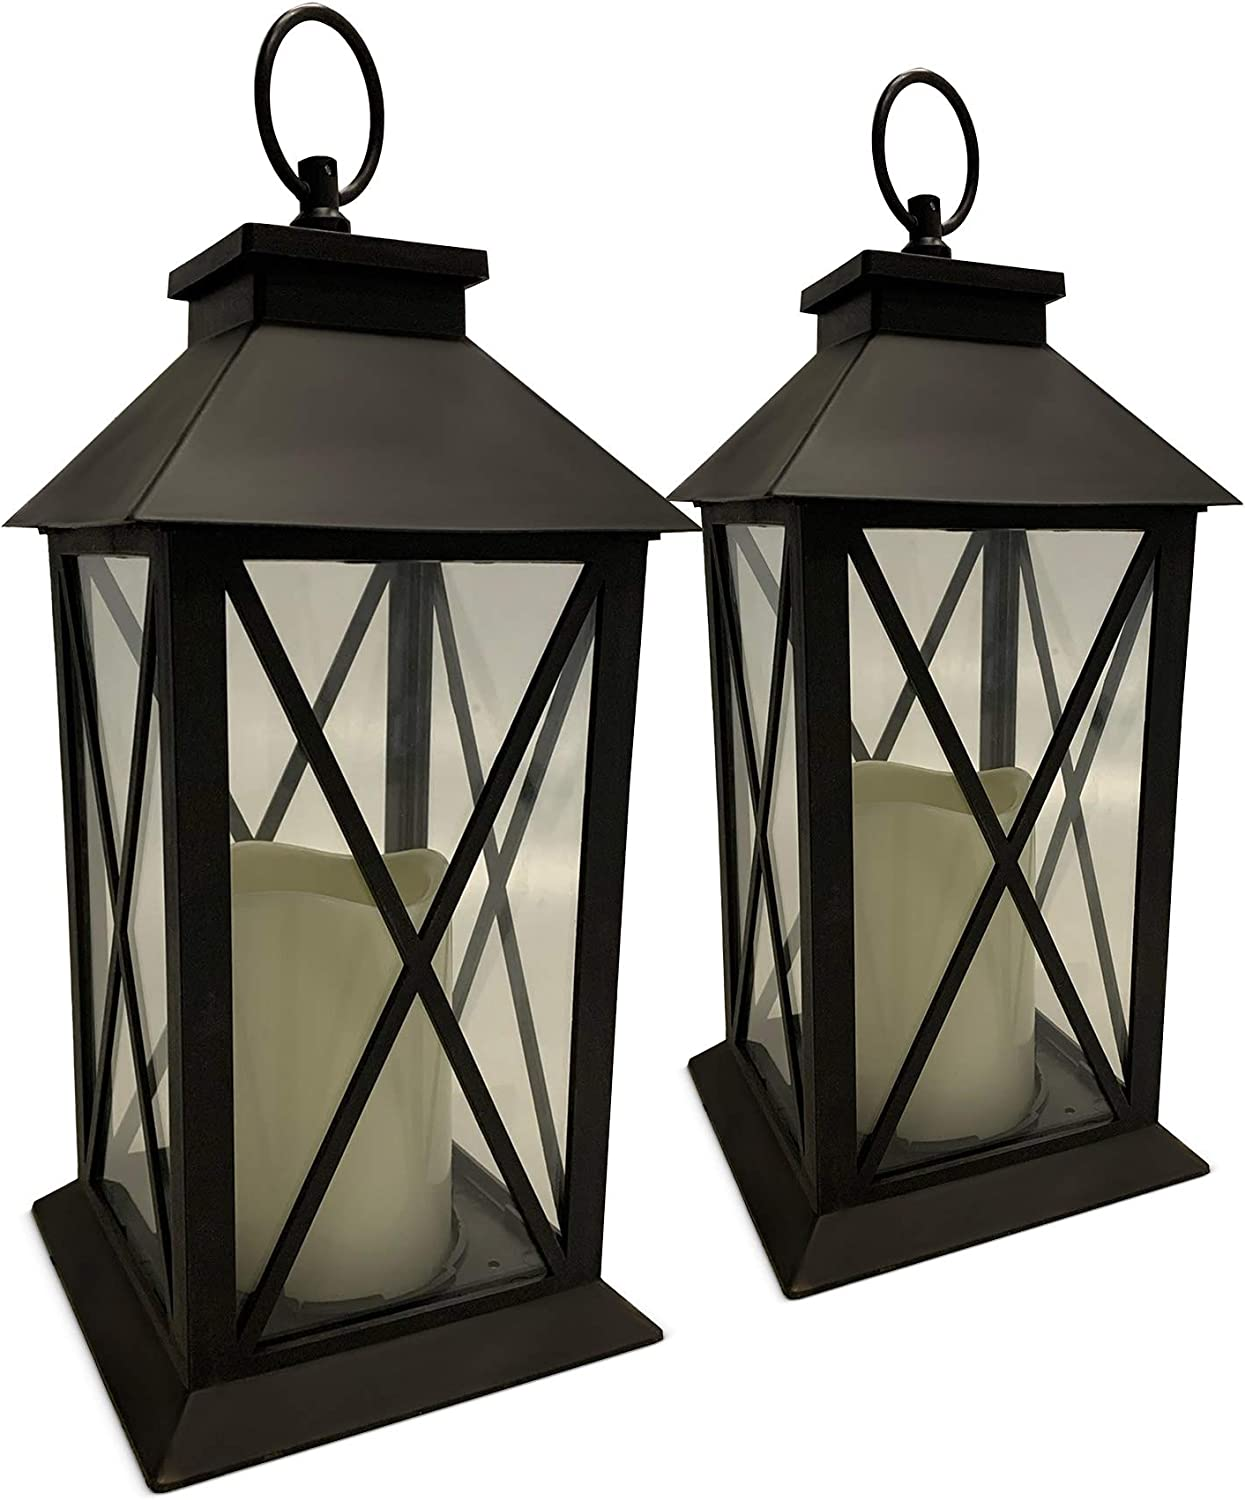 2 PACK BATTERY POWERED FLICKERING FLAME EFFECT LED CANDLE HANGING LANTERNS